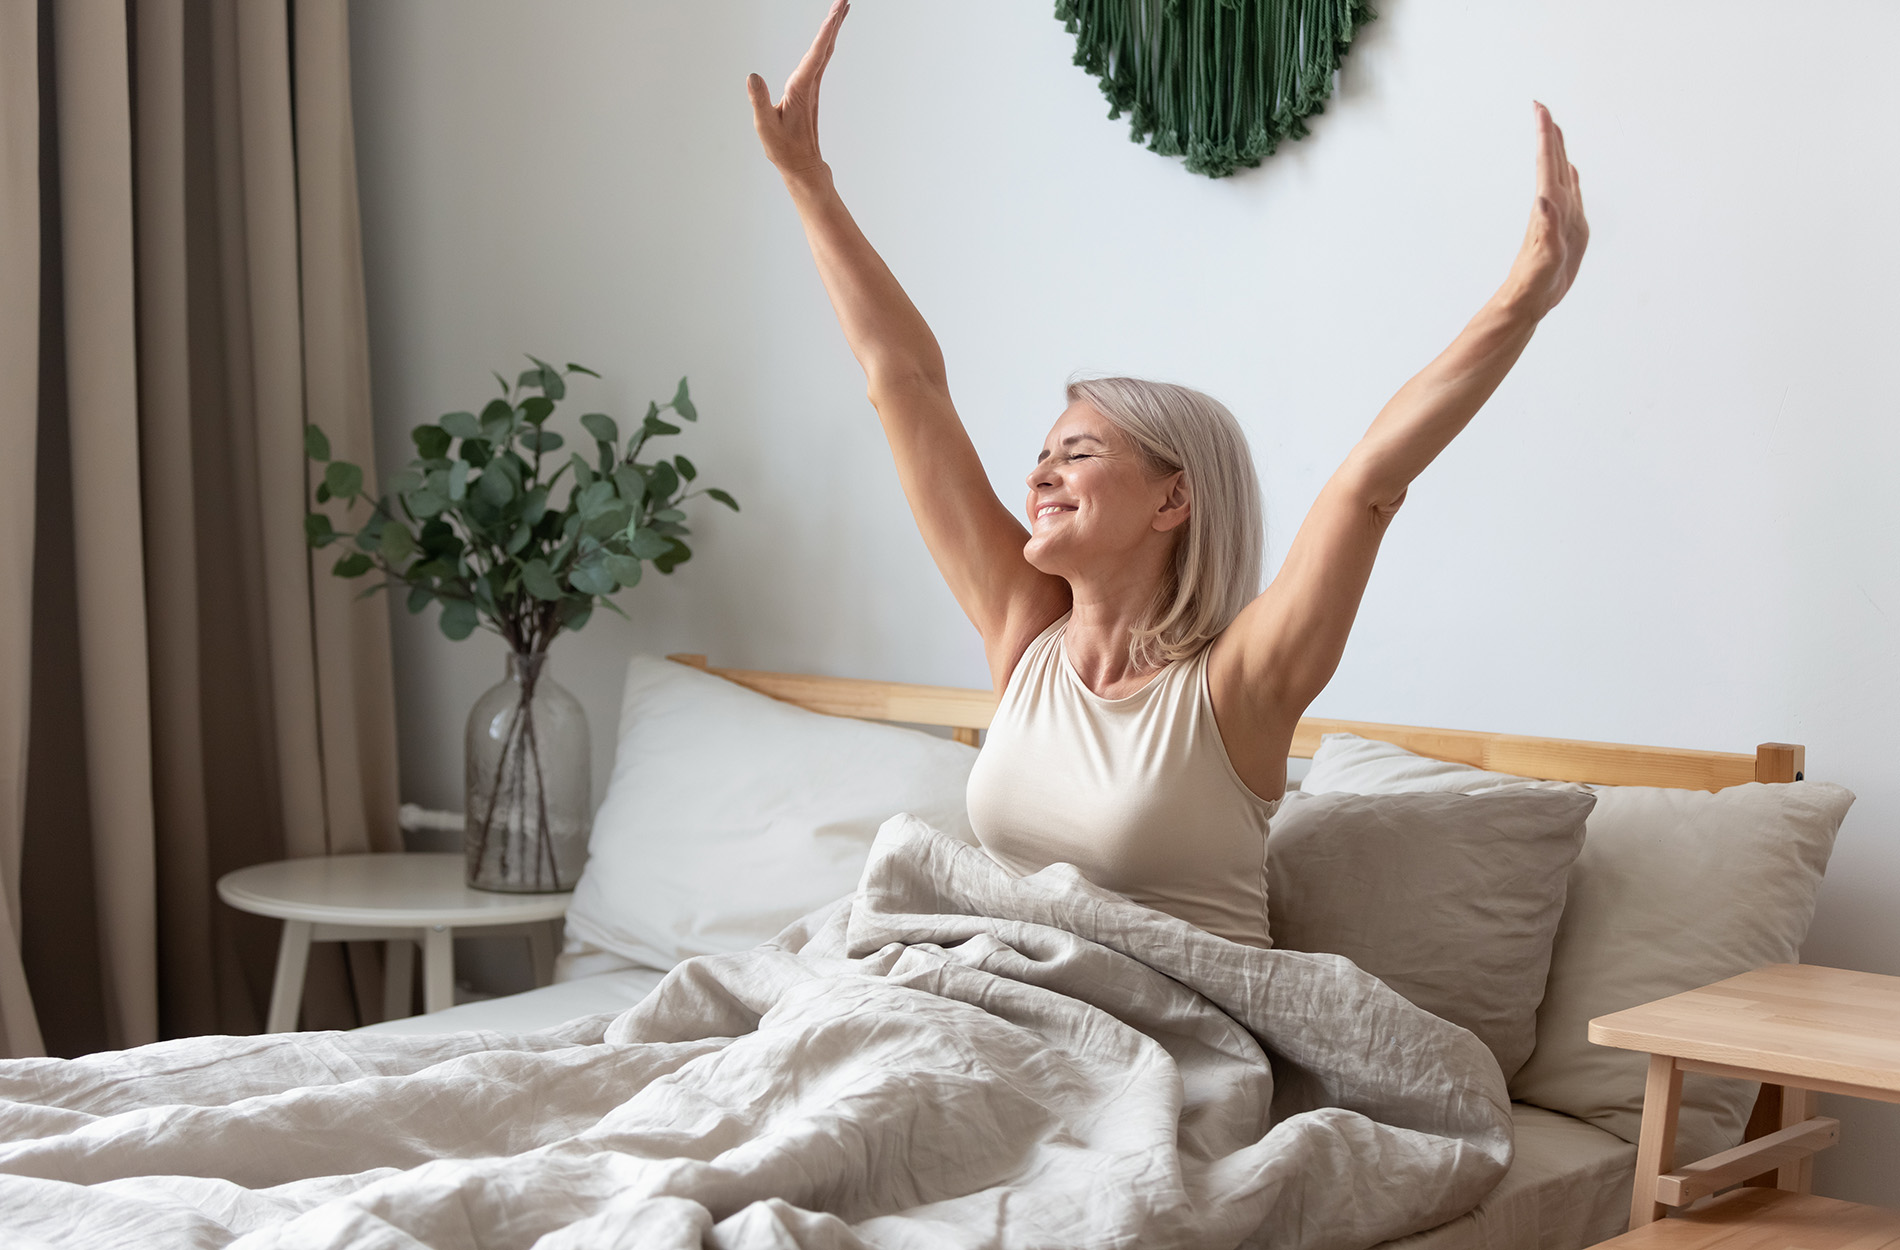 Woman awakening refreshed and happy